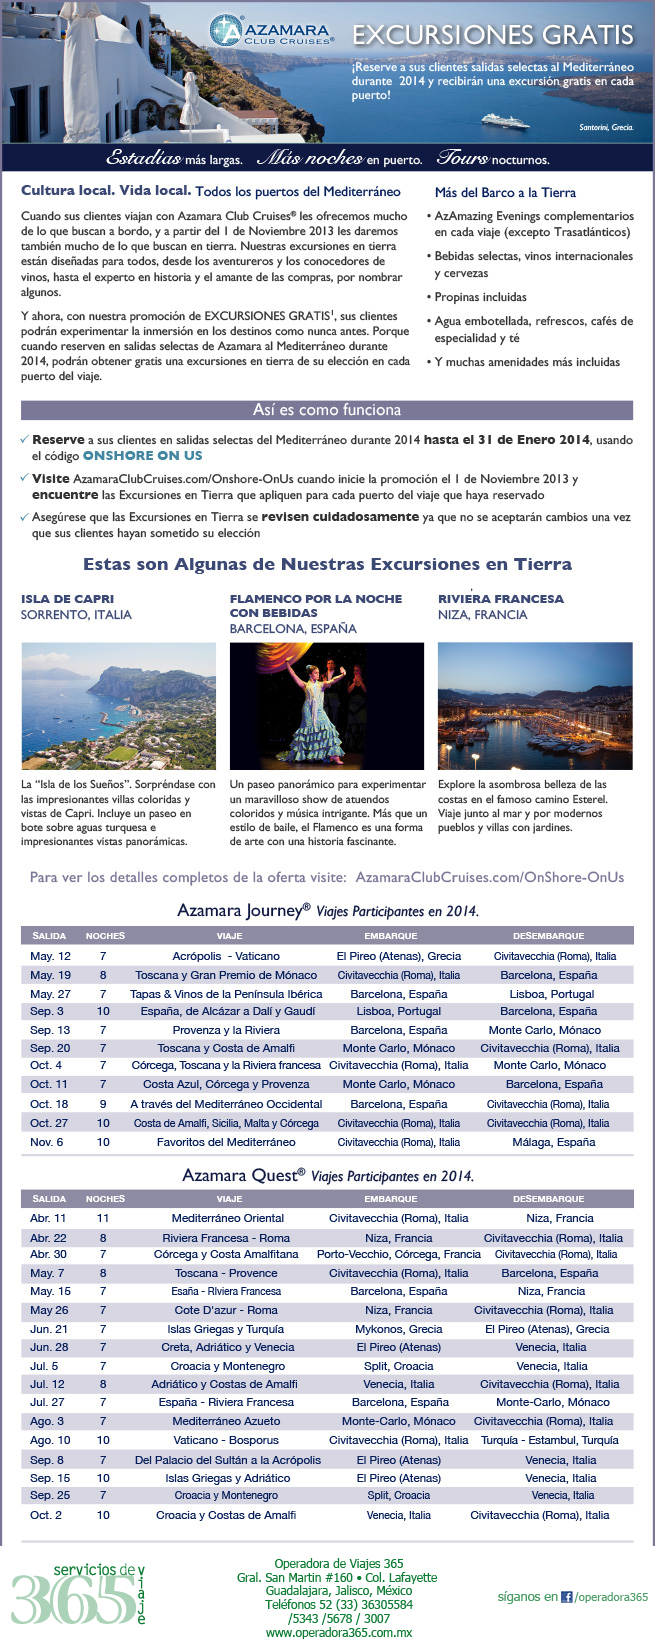 az_excursiones_gratis_trade_dic16